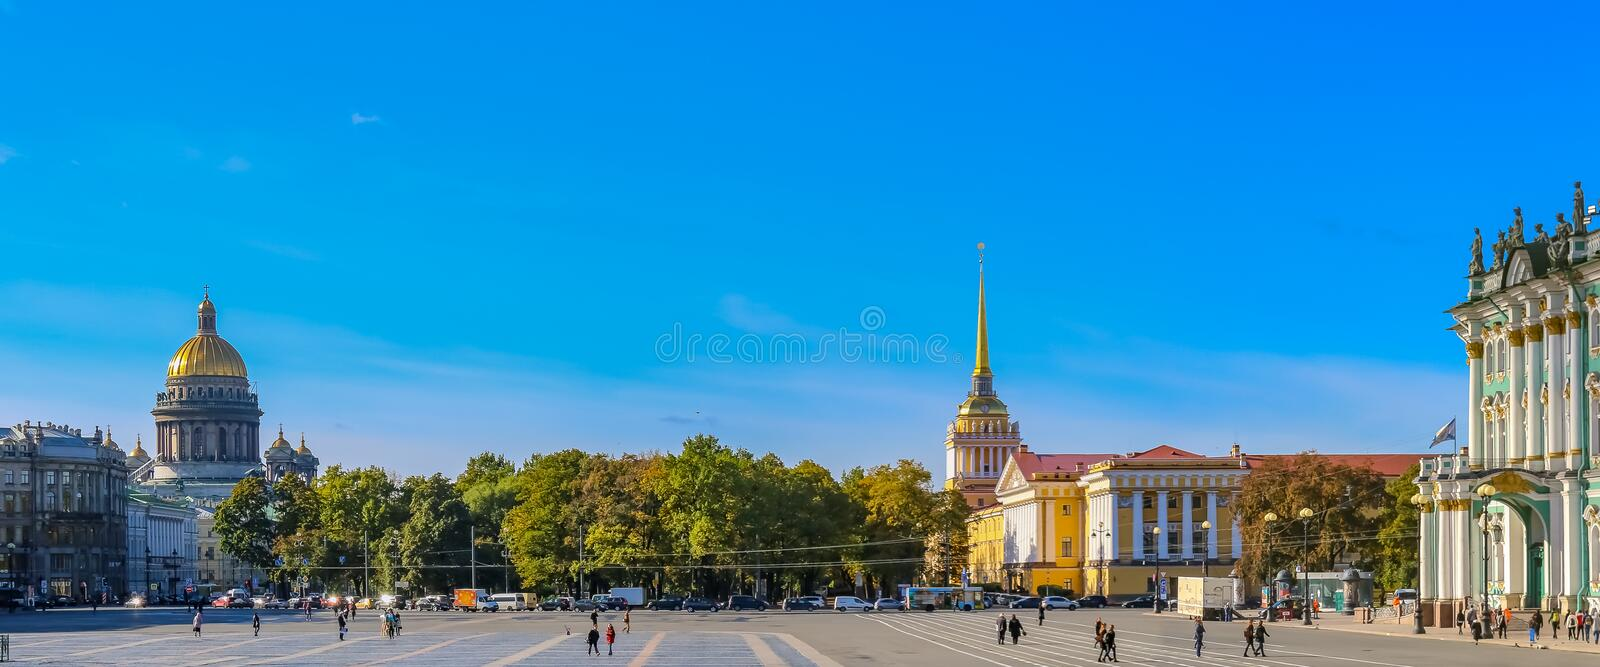 Palace Square in front of Winter Palace - Hermitage in Saint Petersburg, Russia. Saint Petersburg, Russia - October 05, 2015: Panoramic view of Palace Square in royalty free stock image